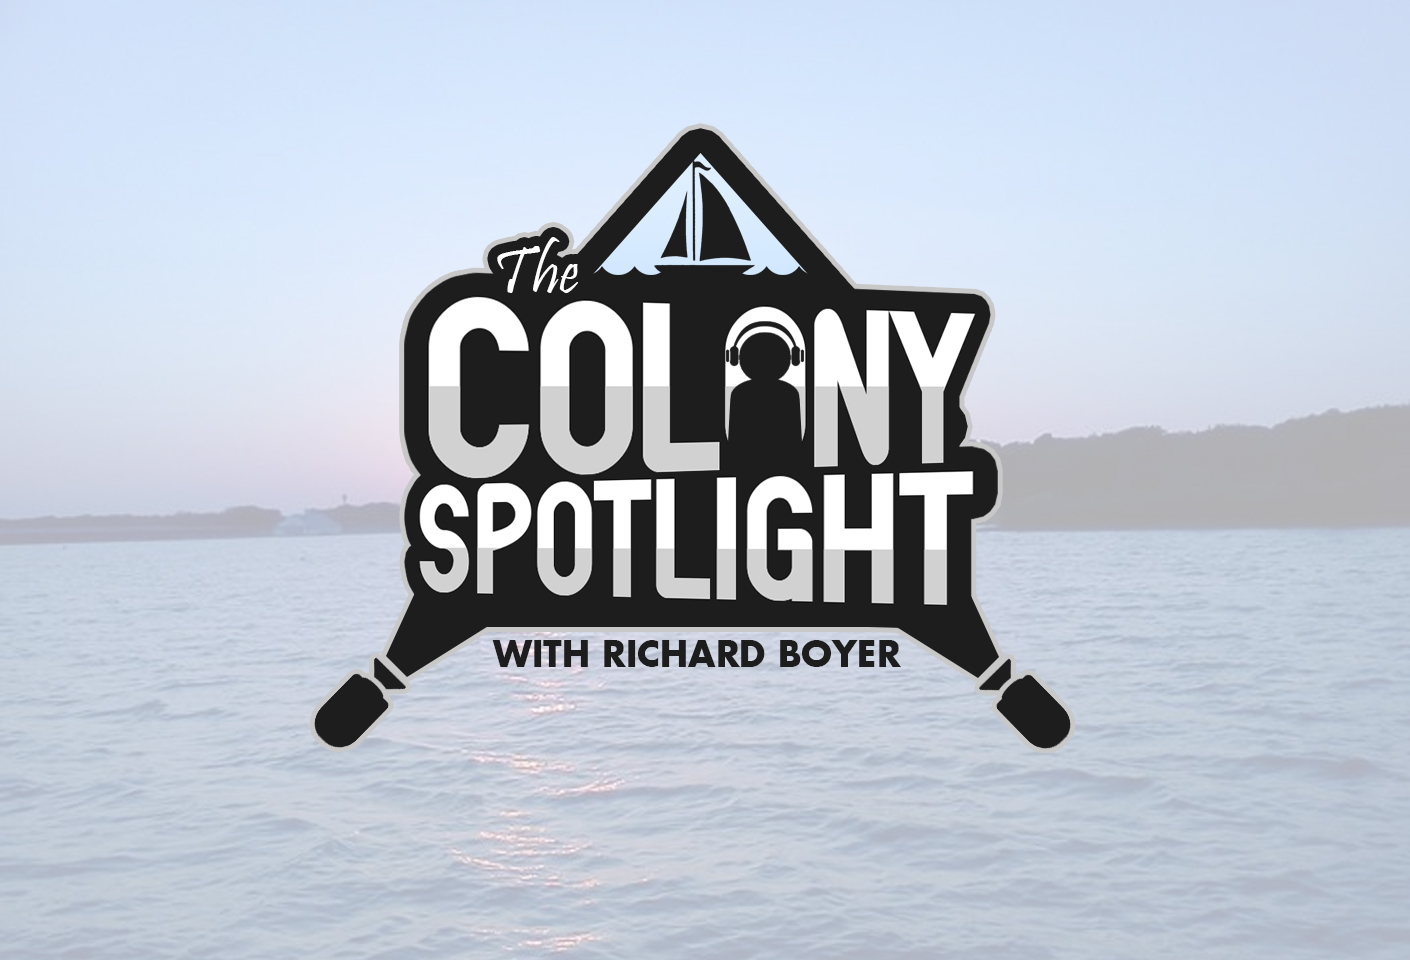 The Colony Spotlight show art